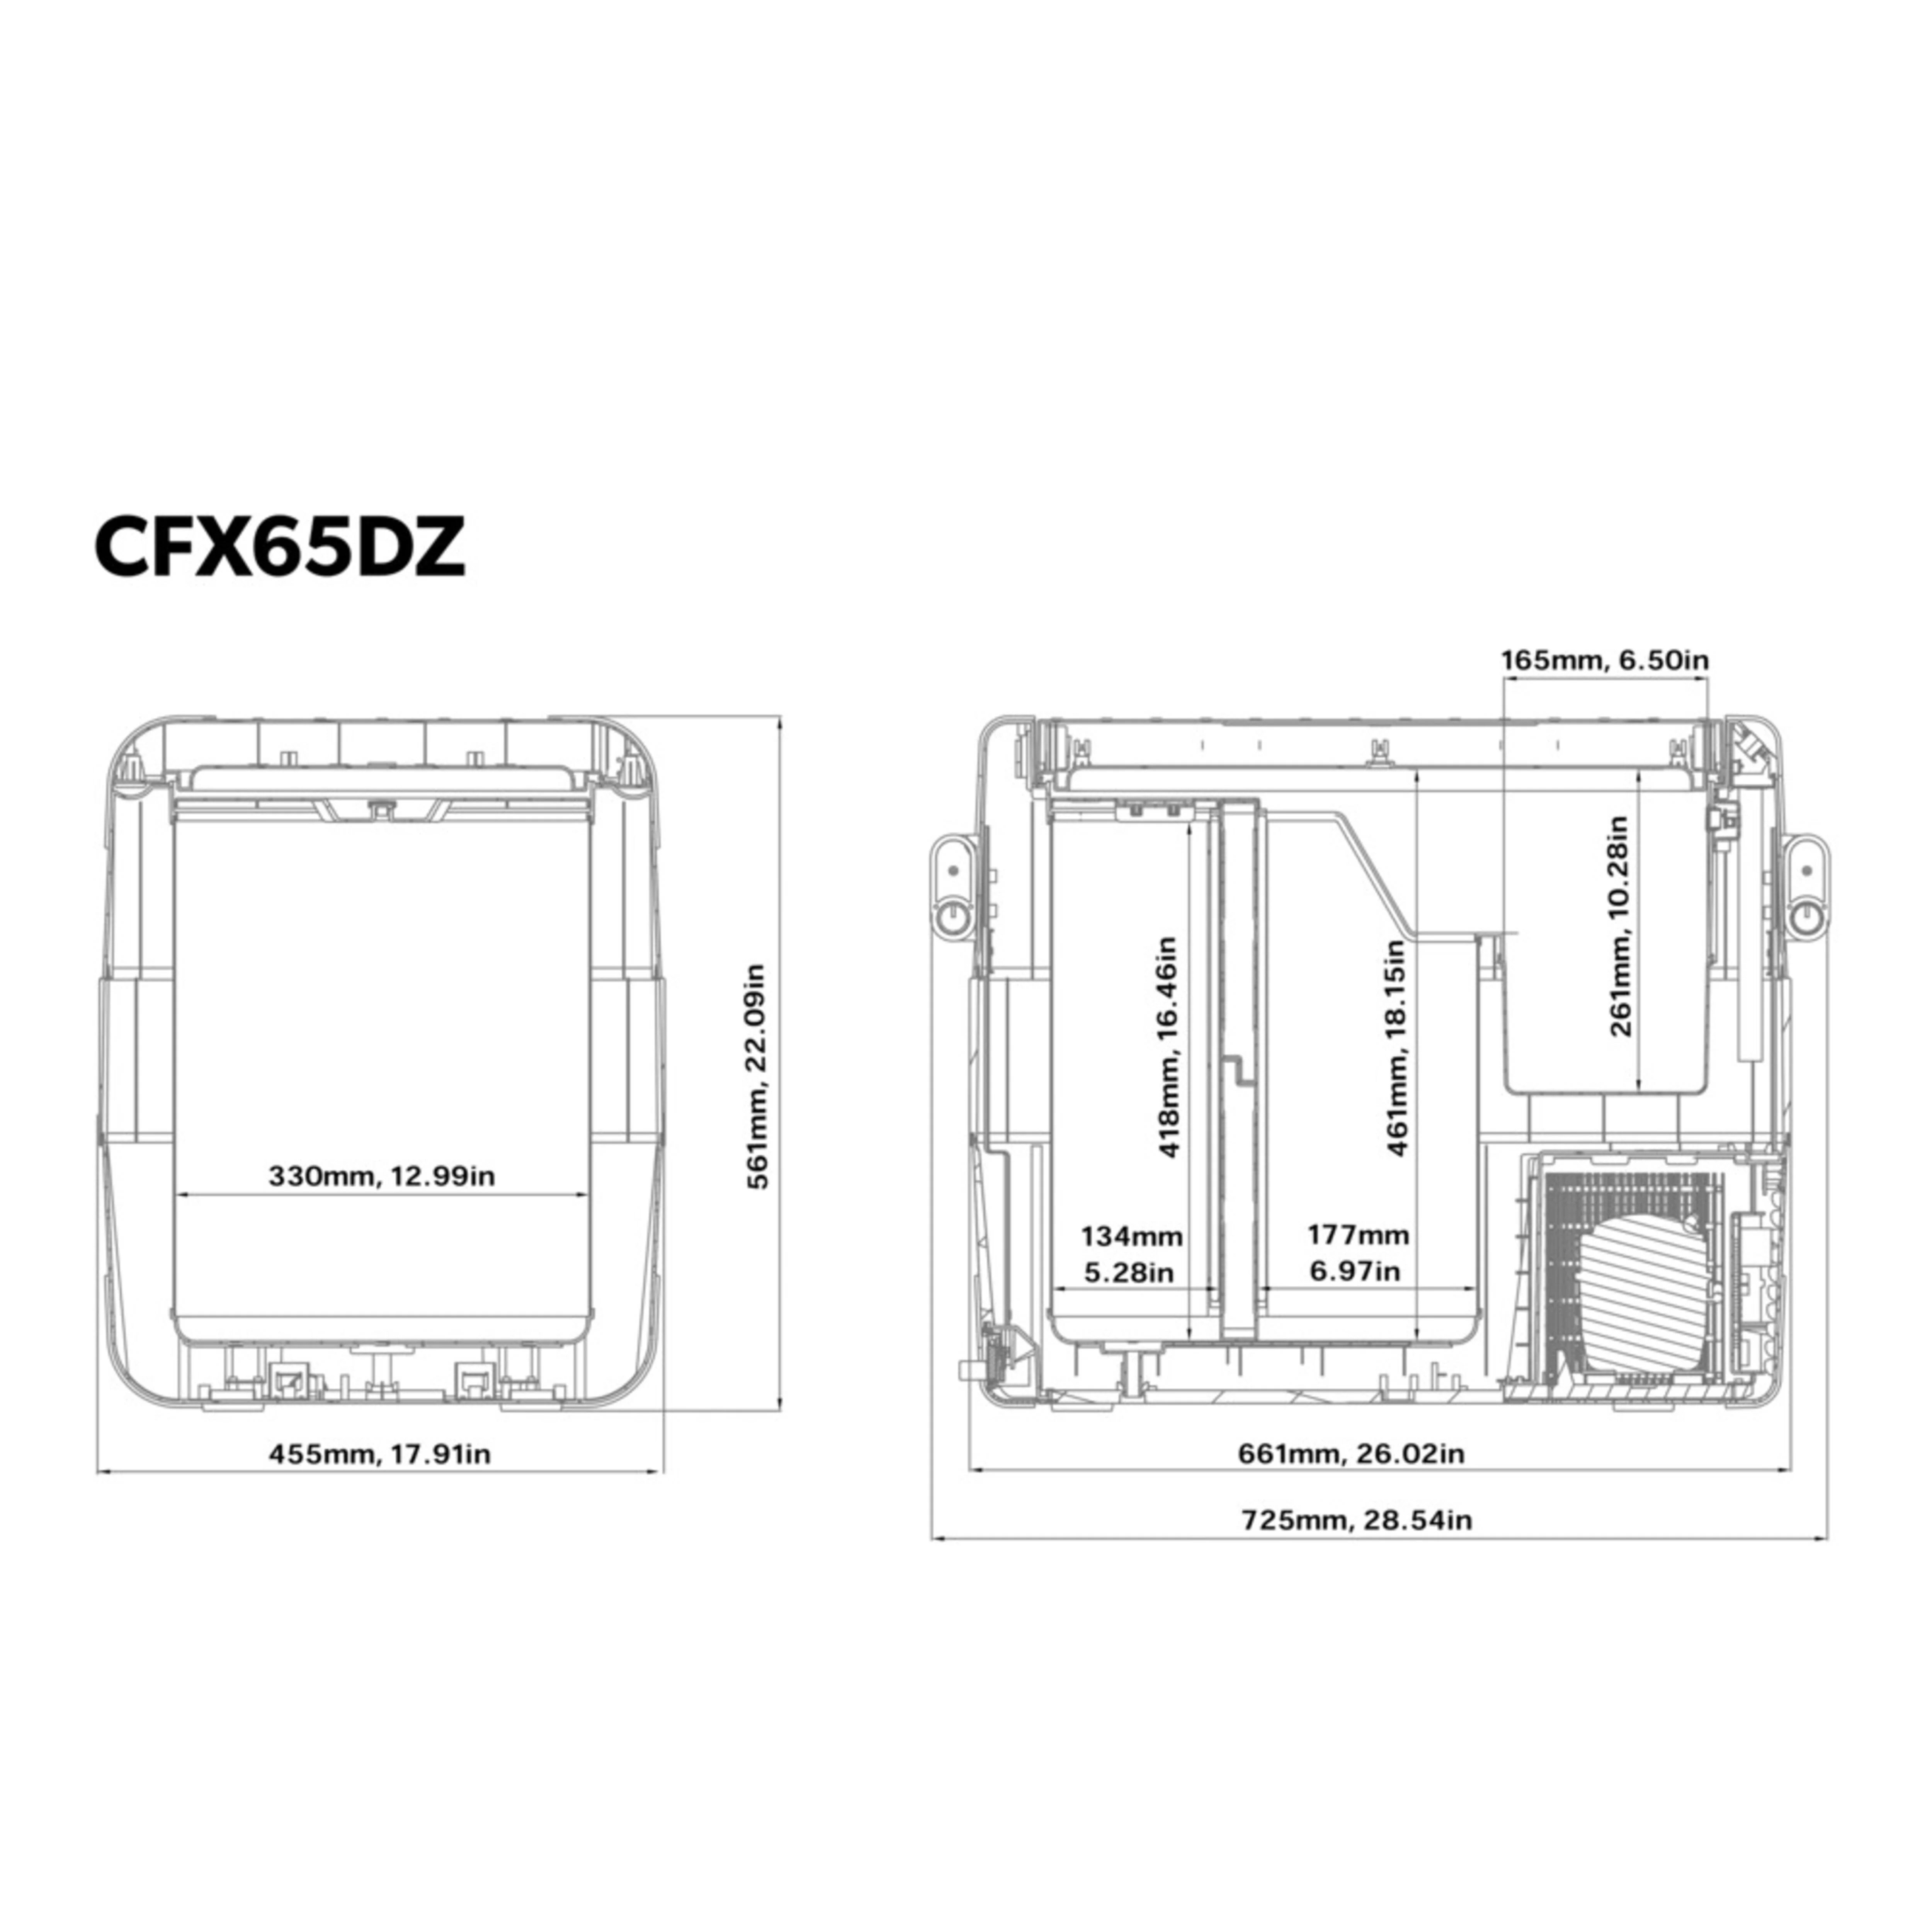 small resolution of cfx 65dz dimensions